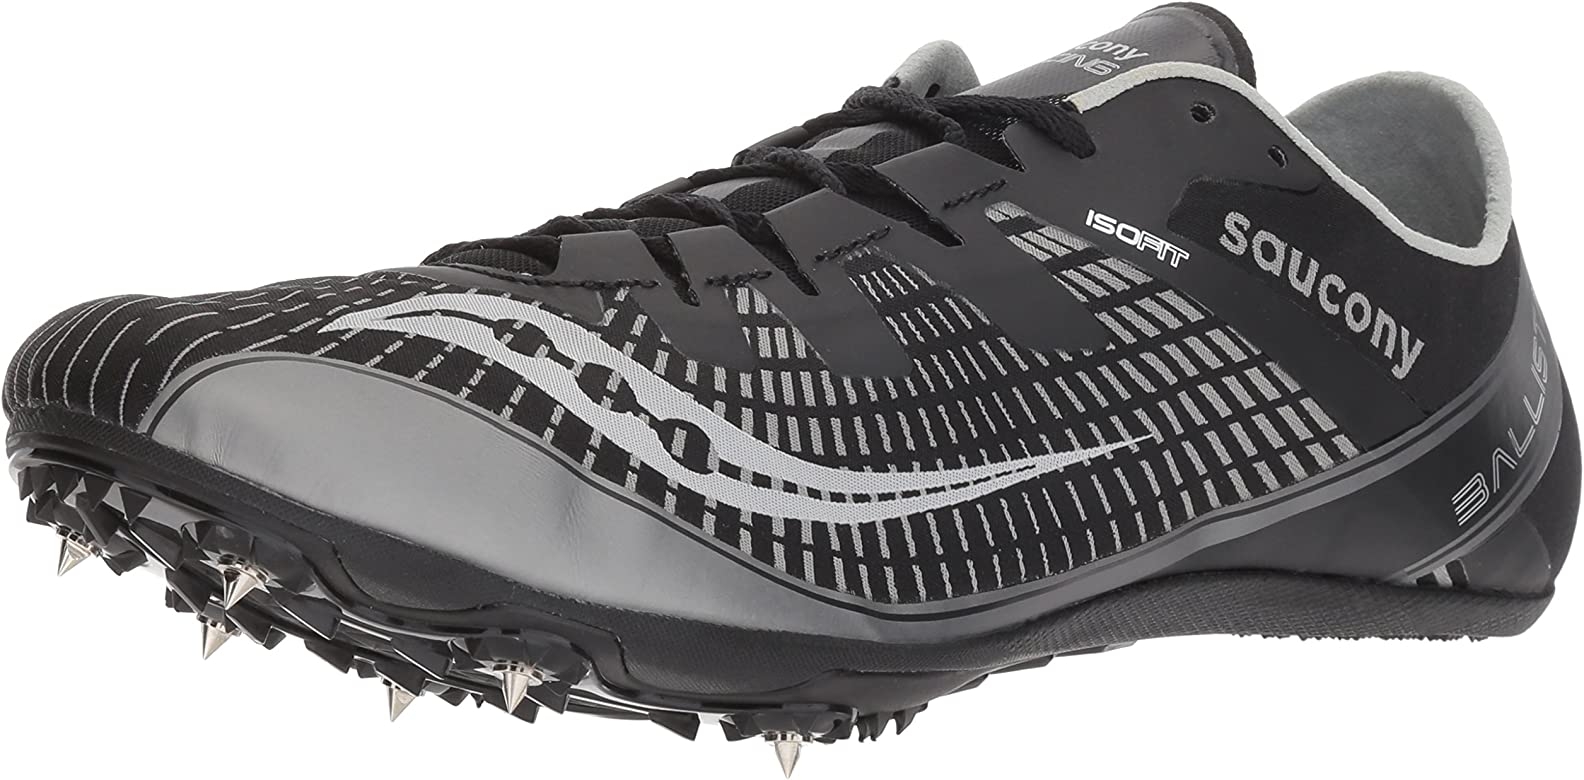 Saucony Mens Ballista 2 Track and Field Shoe, Black/Silver, 7.5 Medium US: Amazon.es: Zapatos y complementos